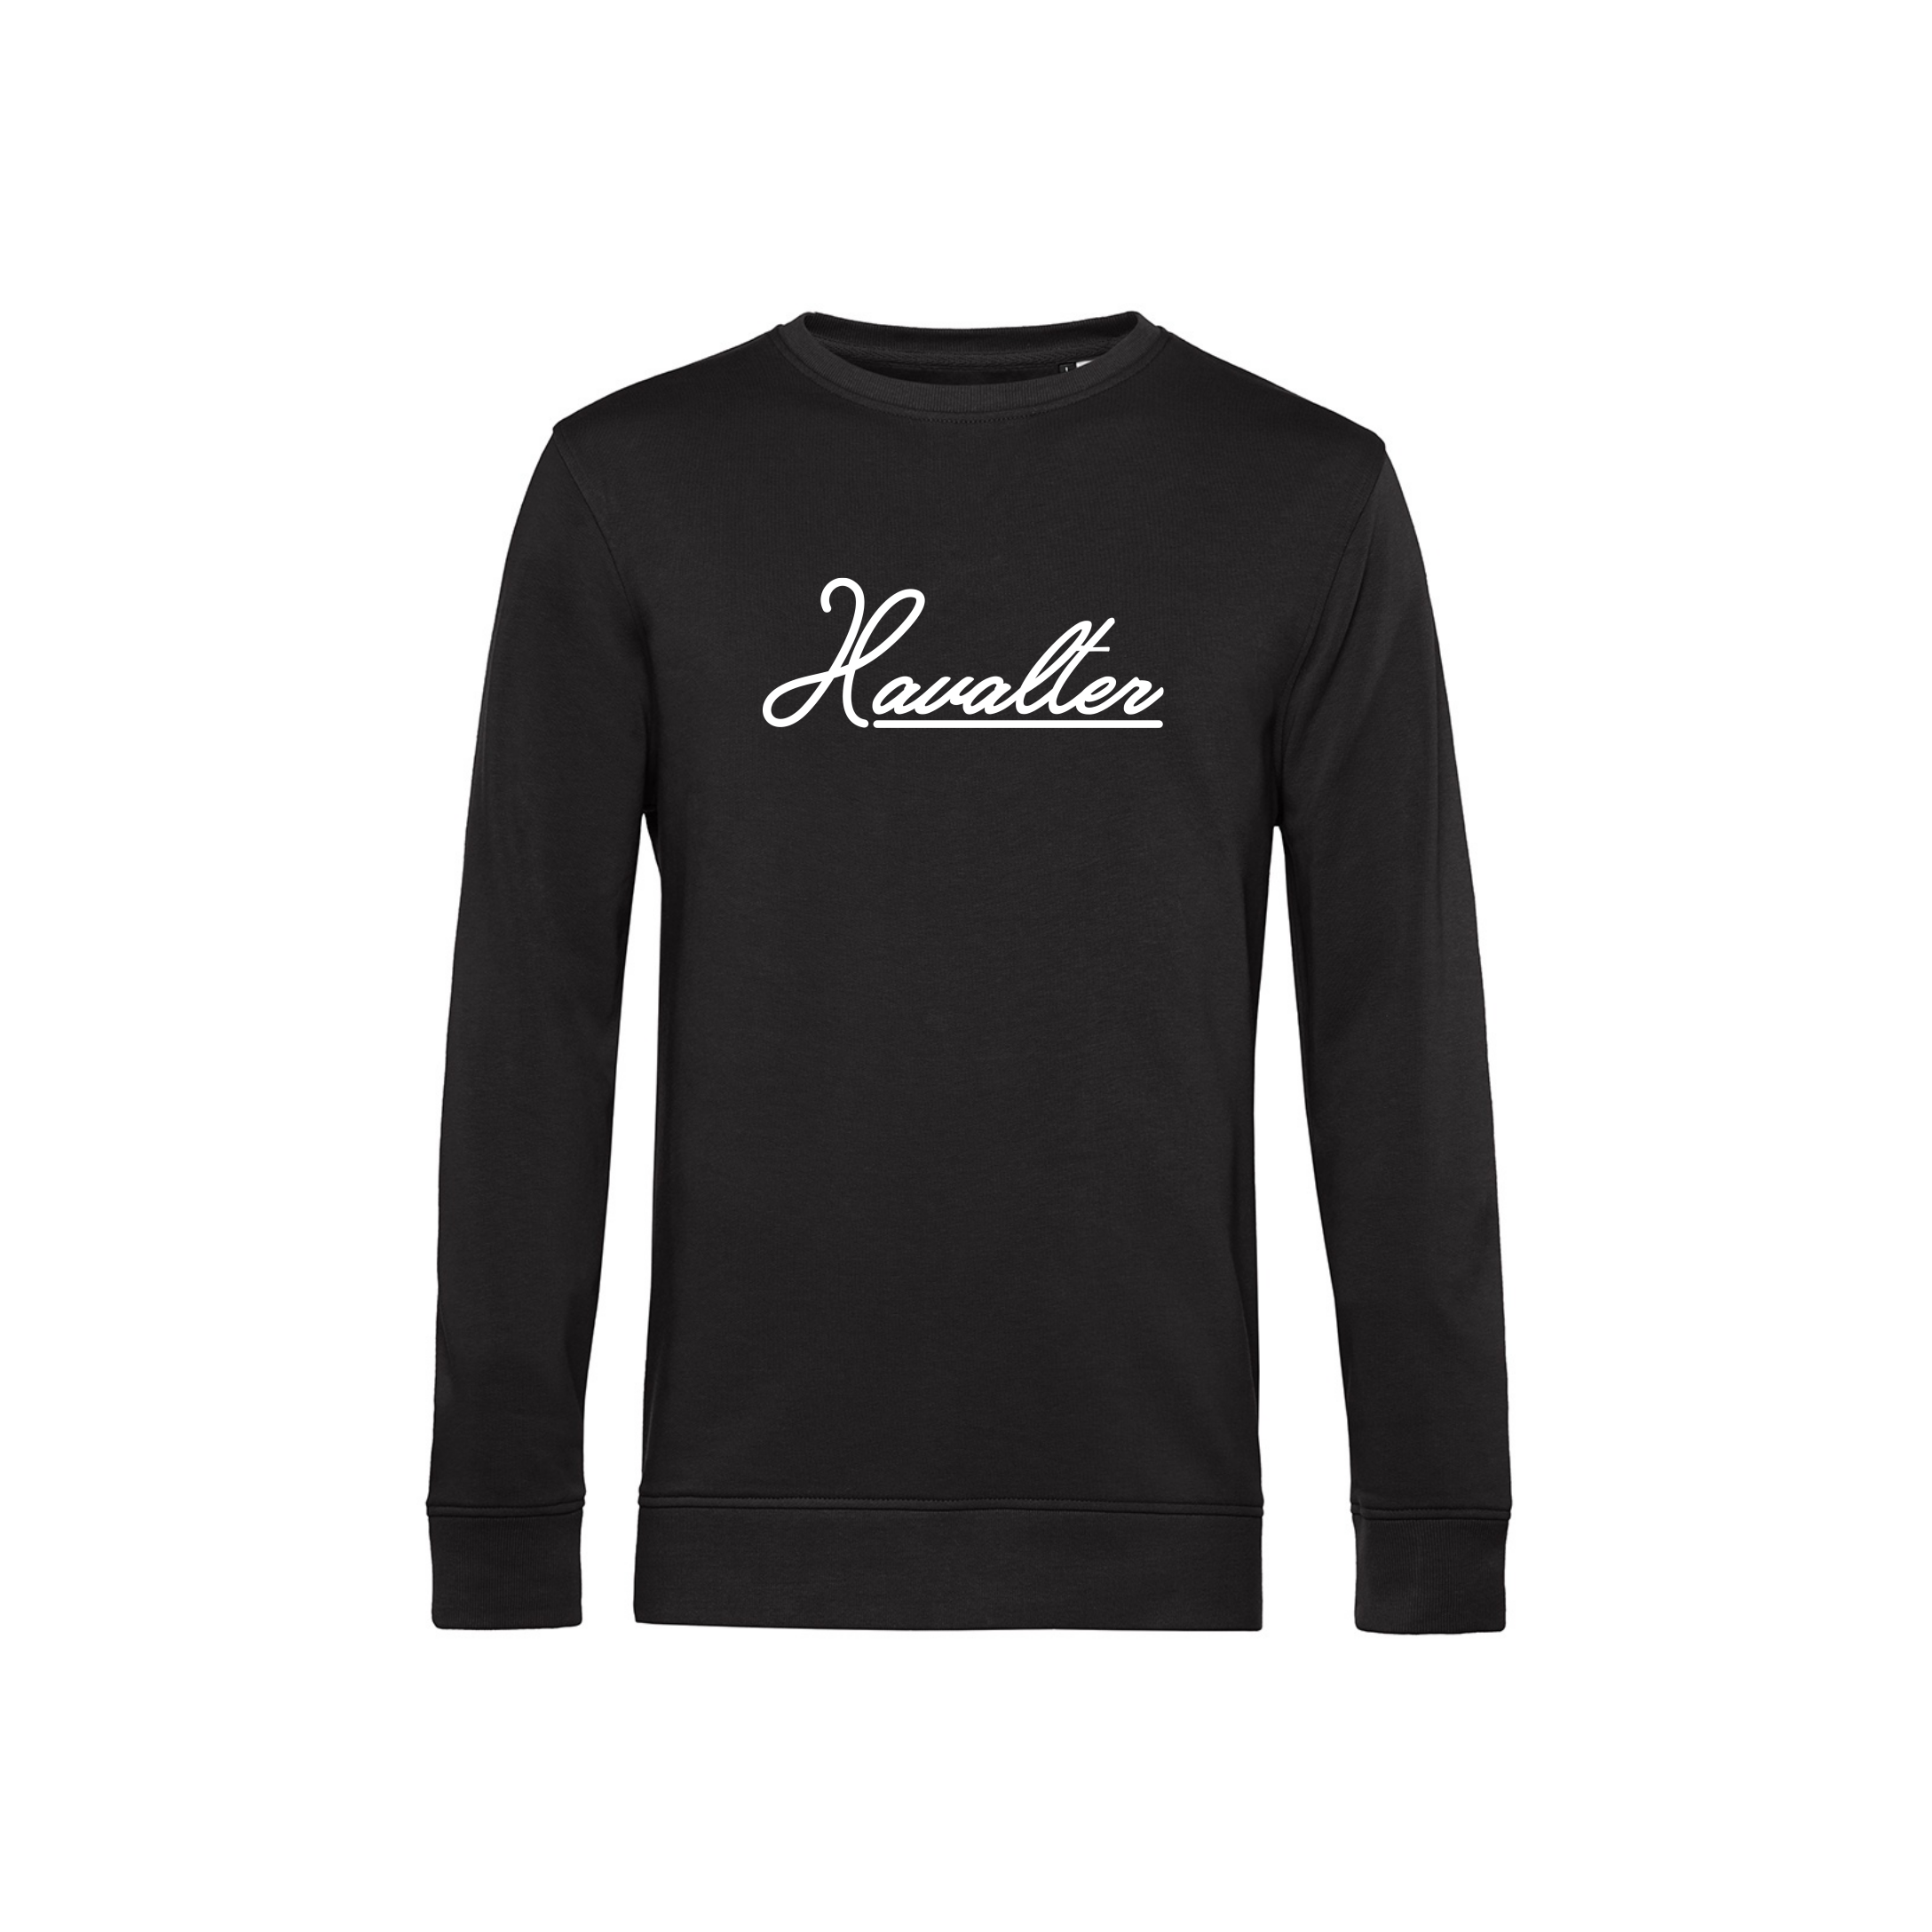 HAVALTER SWEATER BLACK BASIC LOGO, UNISEX